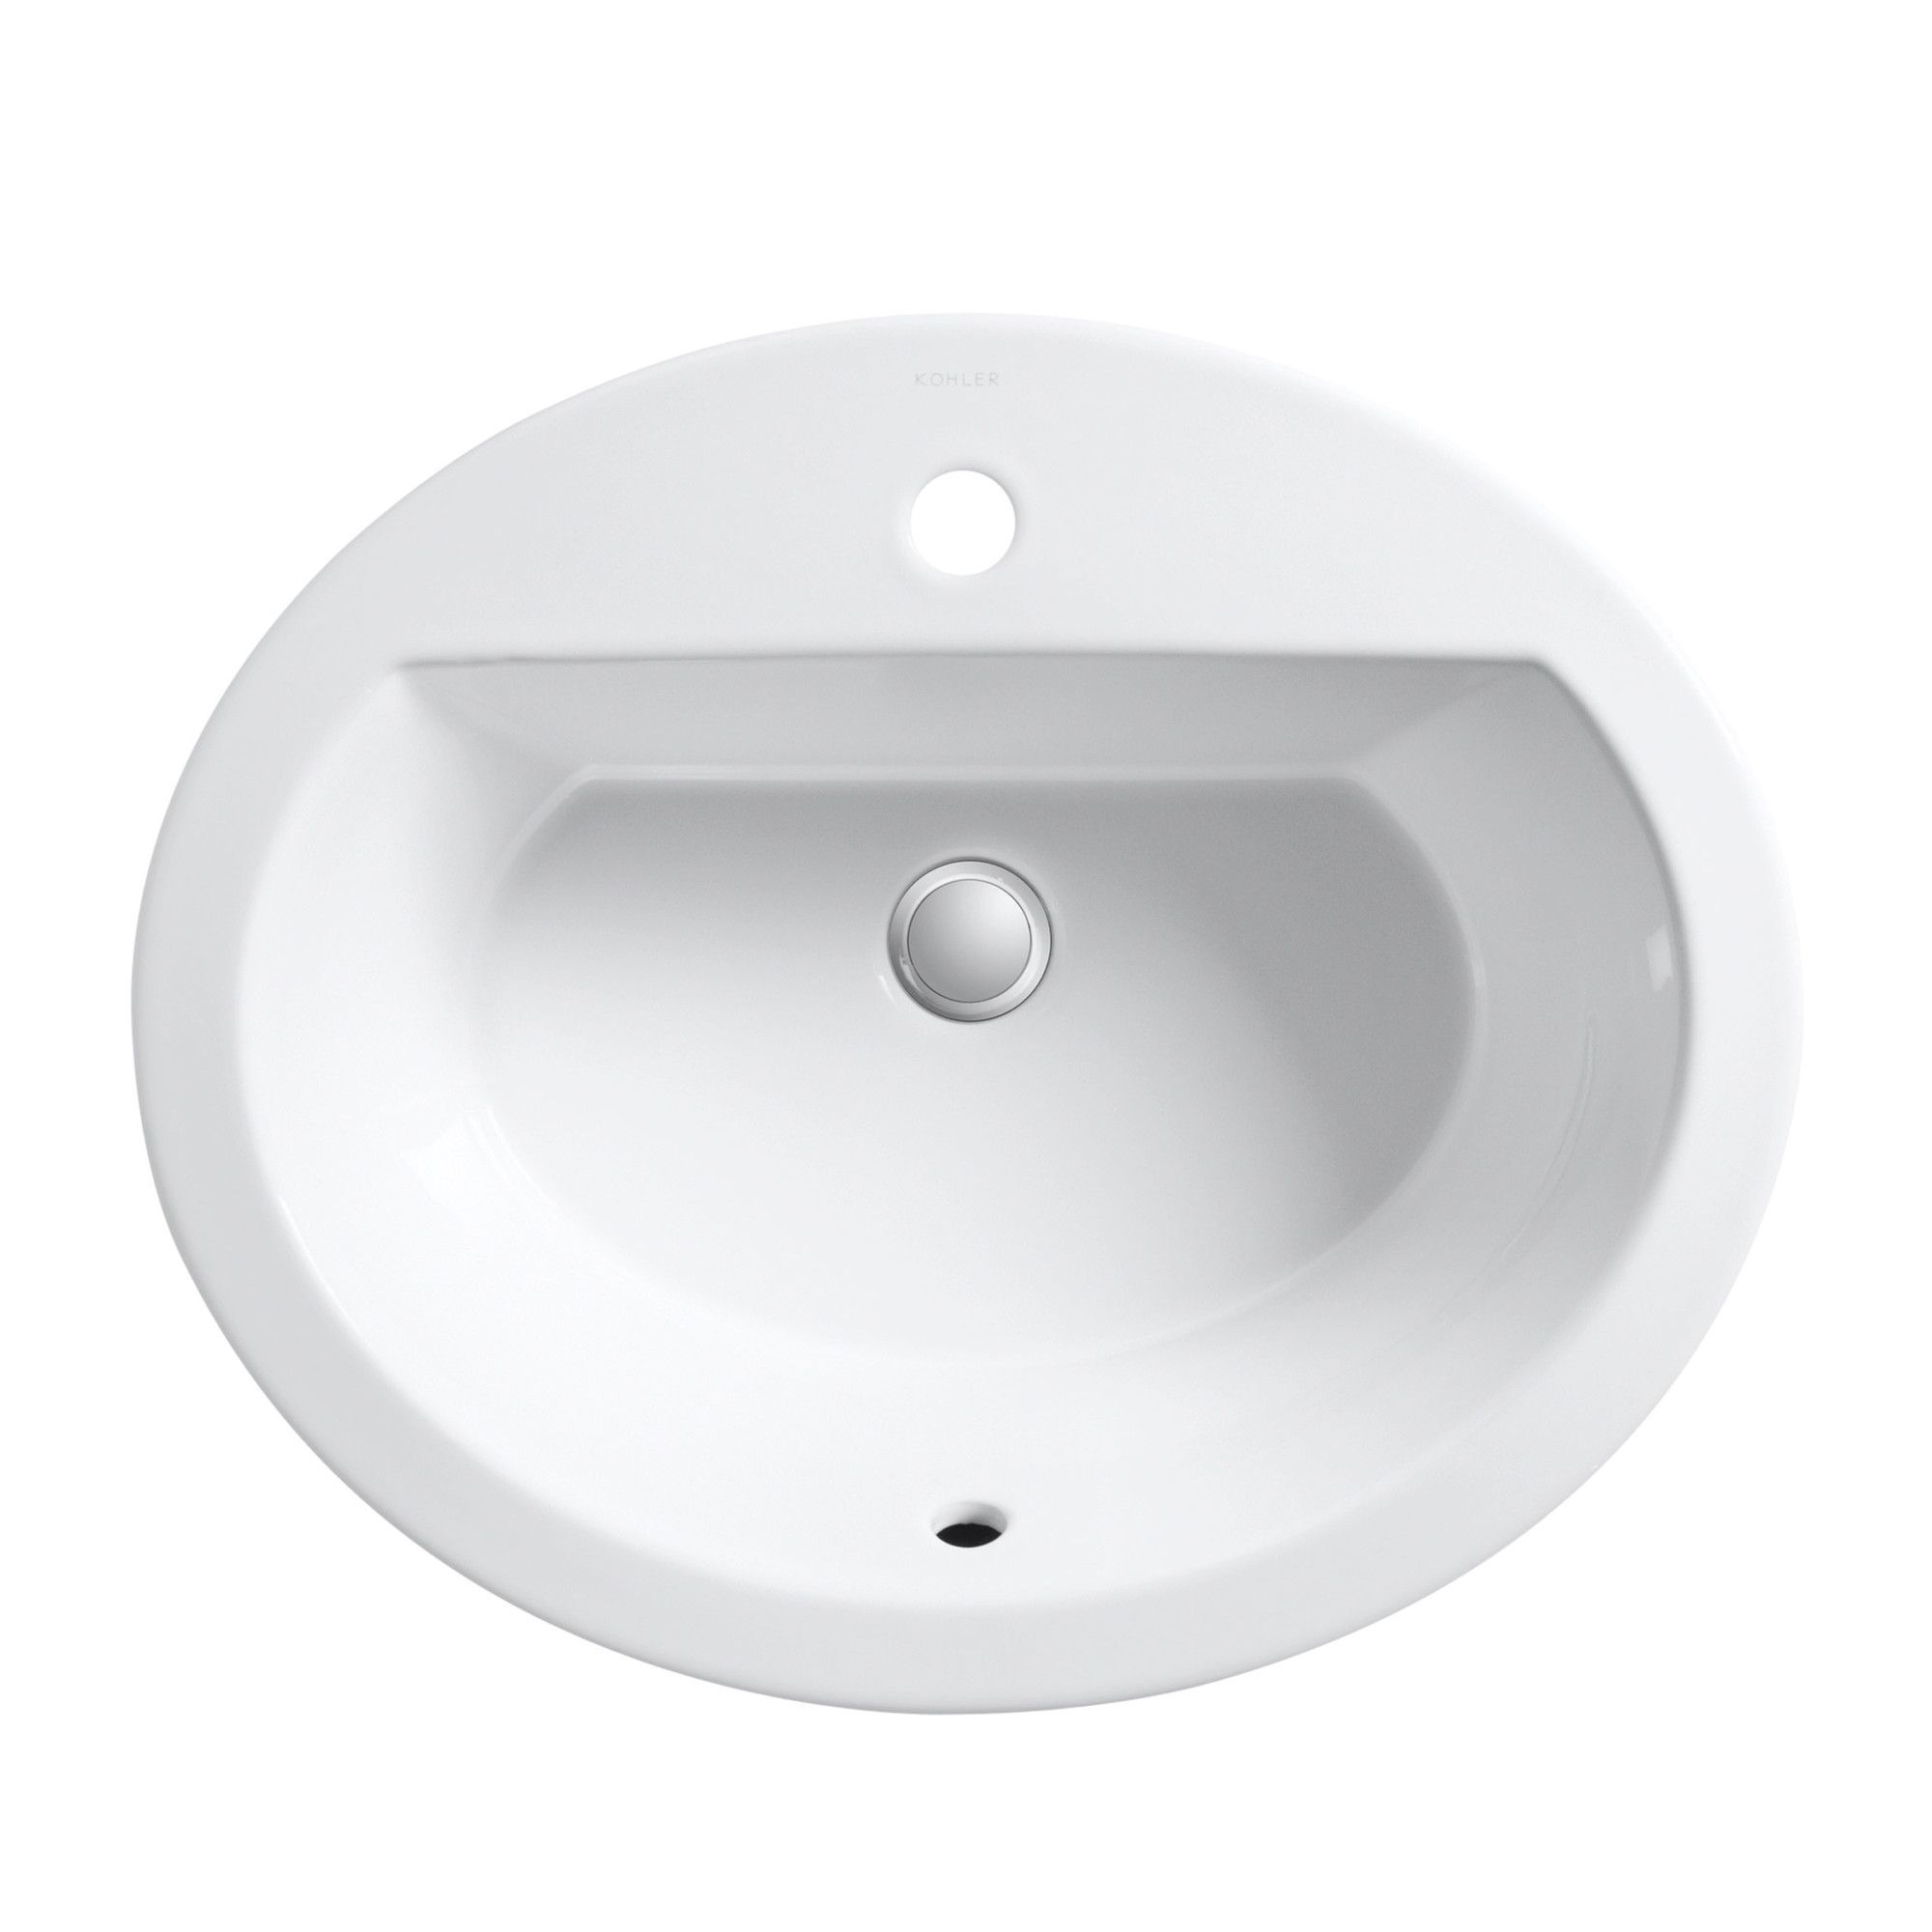 Bryant Ceramic Oval Drop In Bathroom Sink With Overflow Drop In